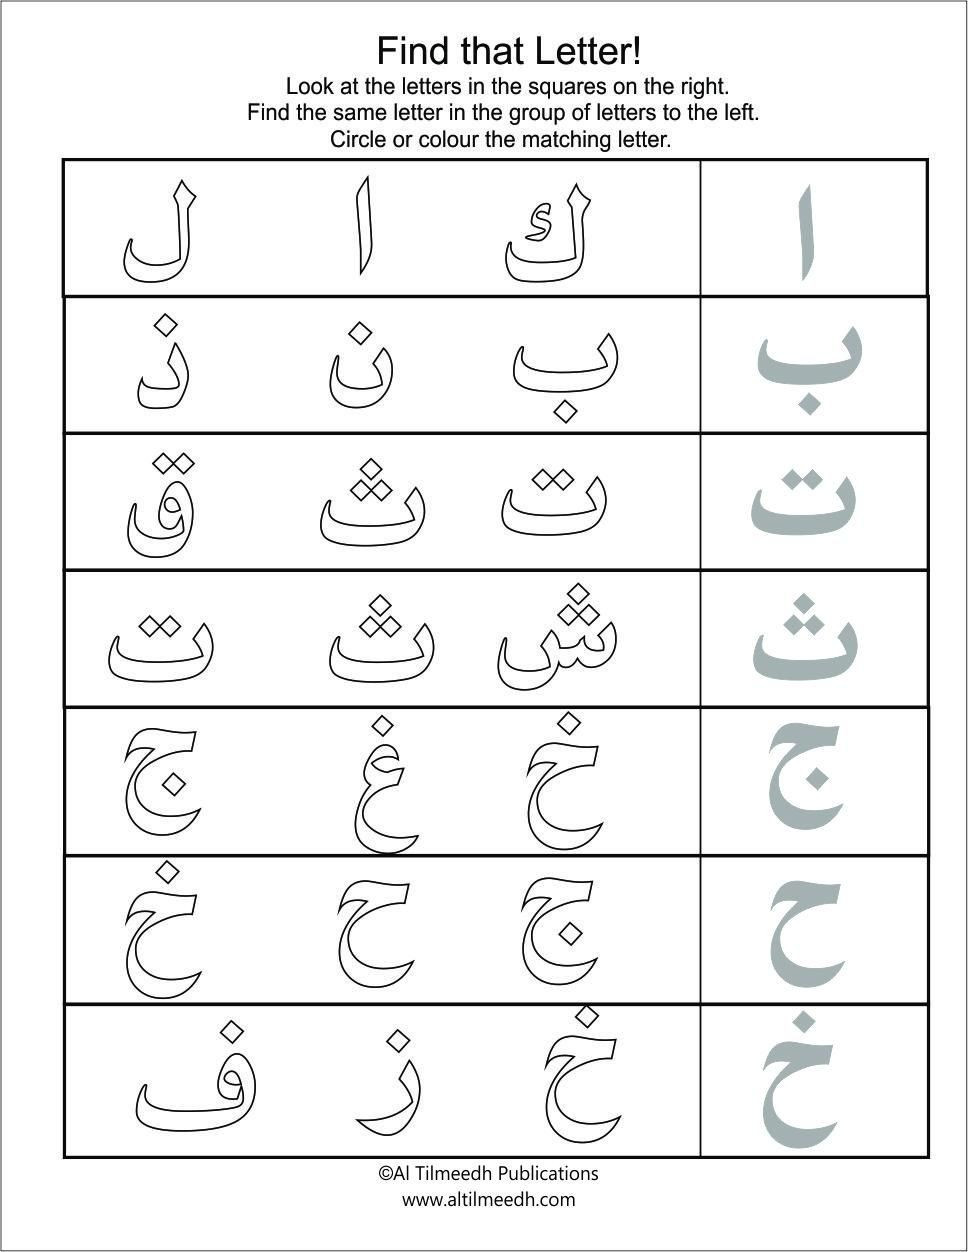 Arabic Alphabet Worksheets for Preschoolers Find that Letter